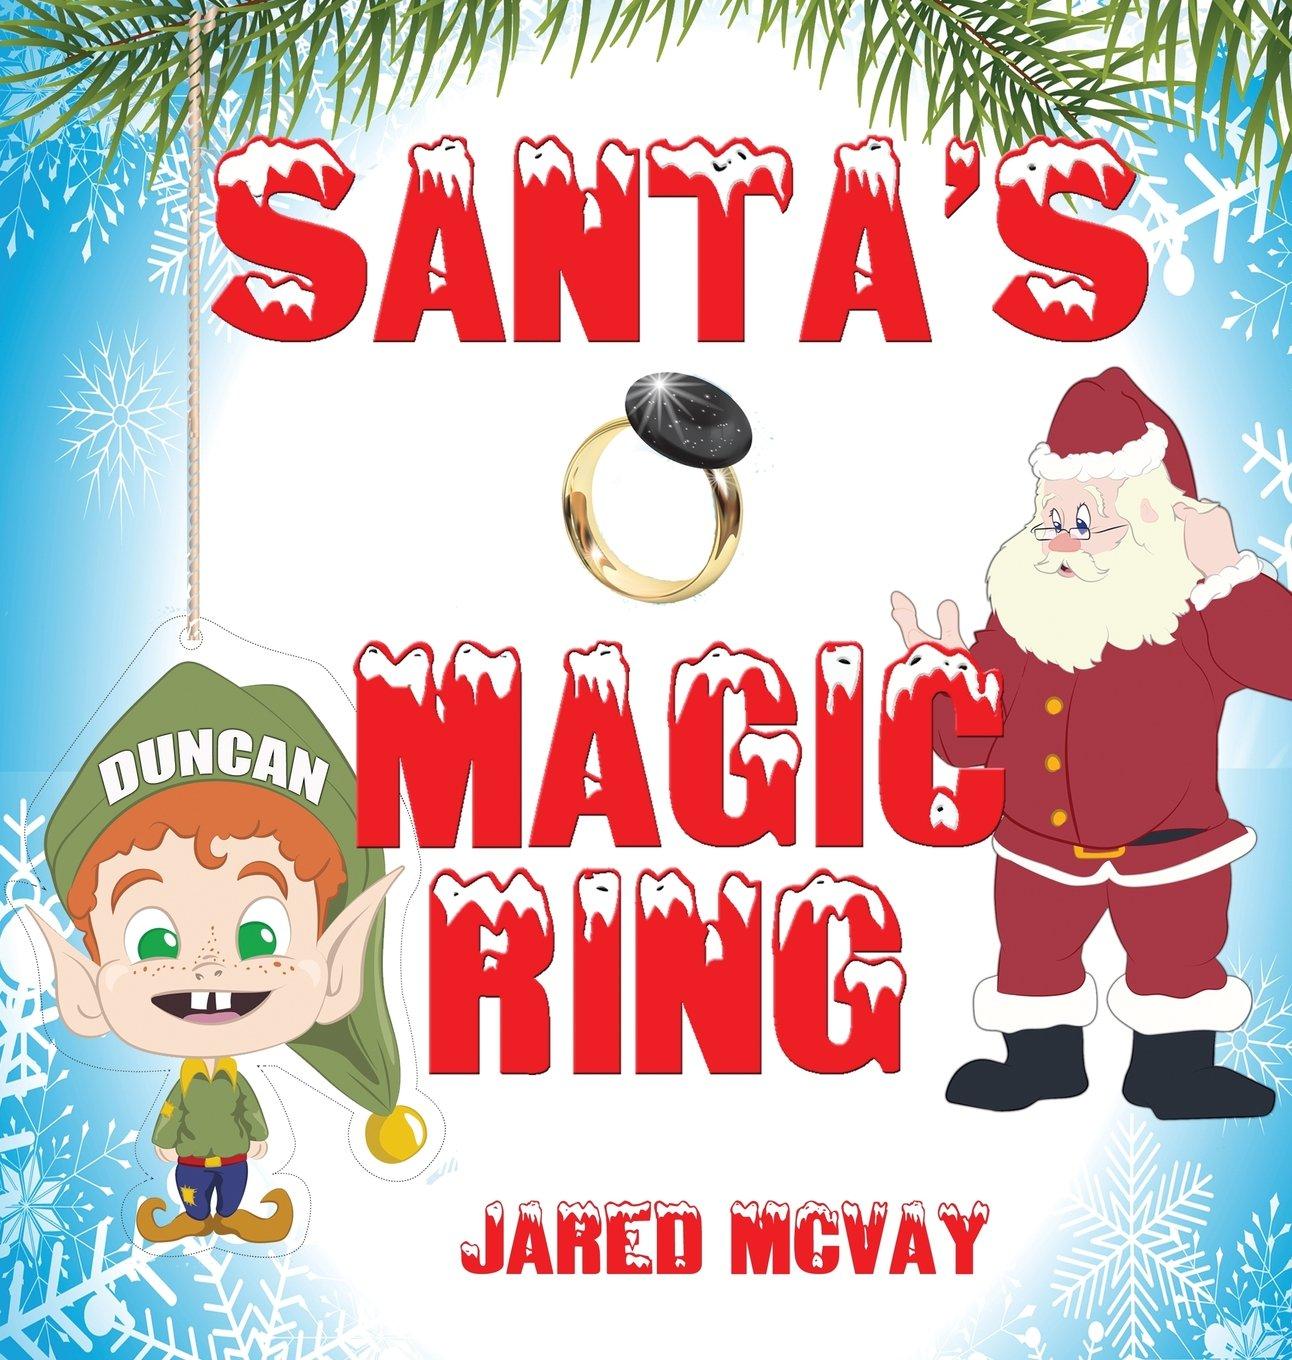 Santas Magic Ring Jared McVay Jerri Burr Joe Huffman